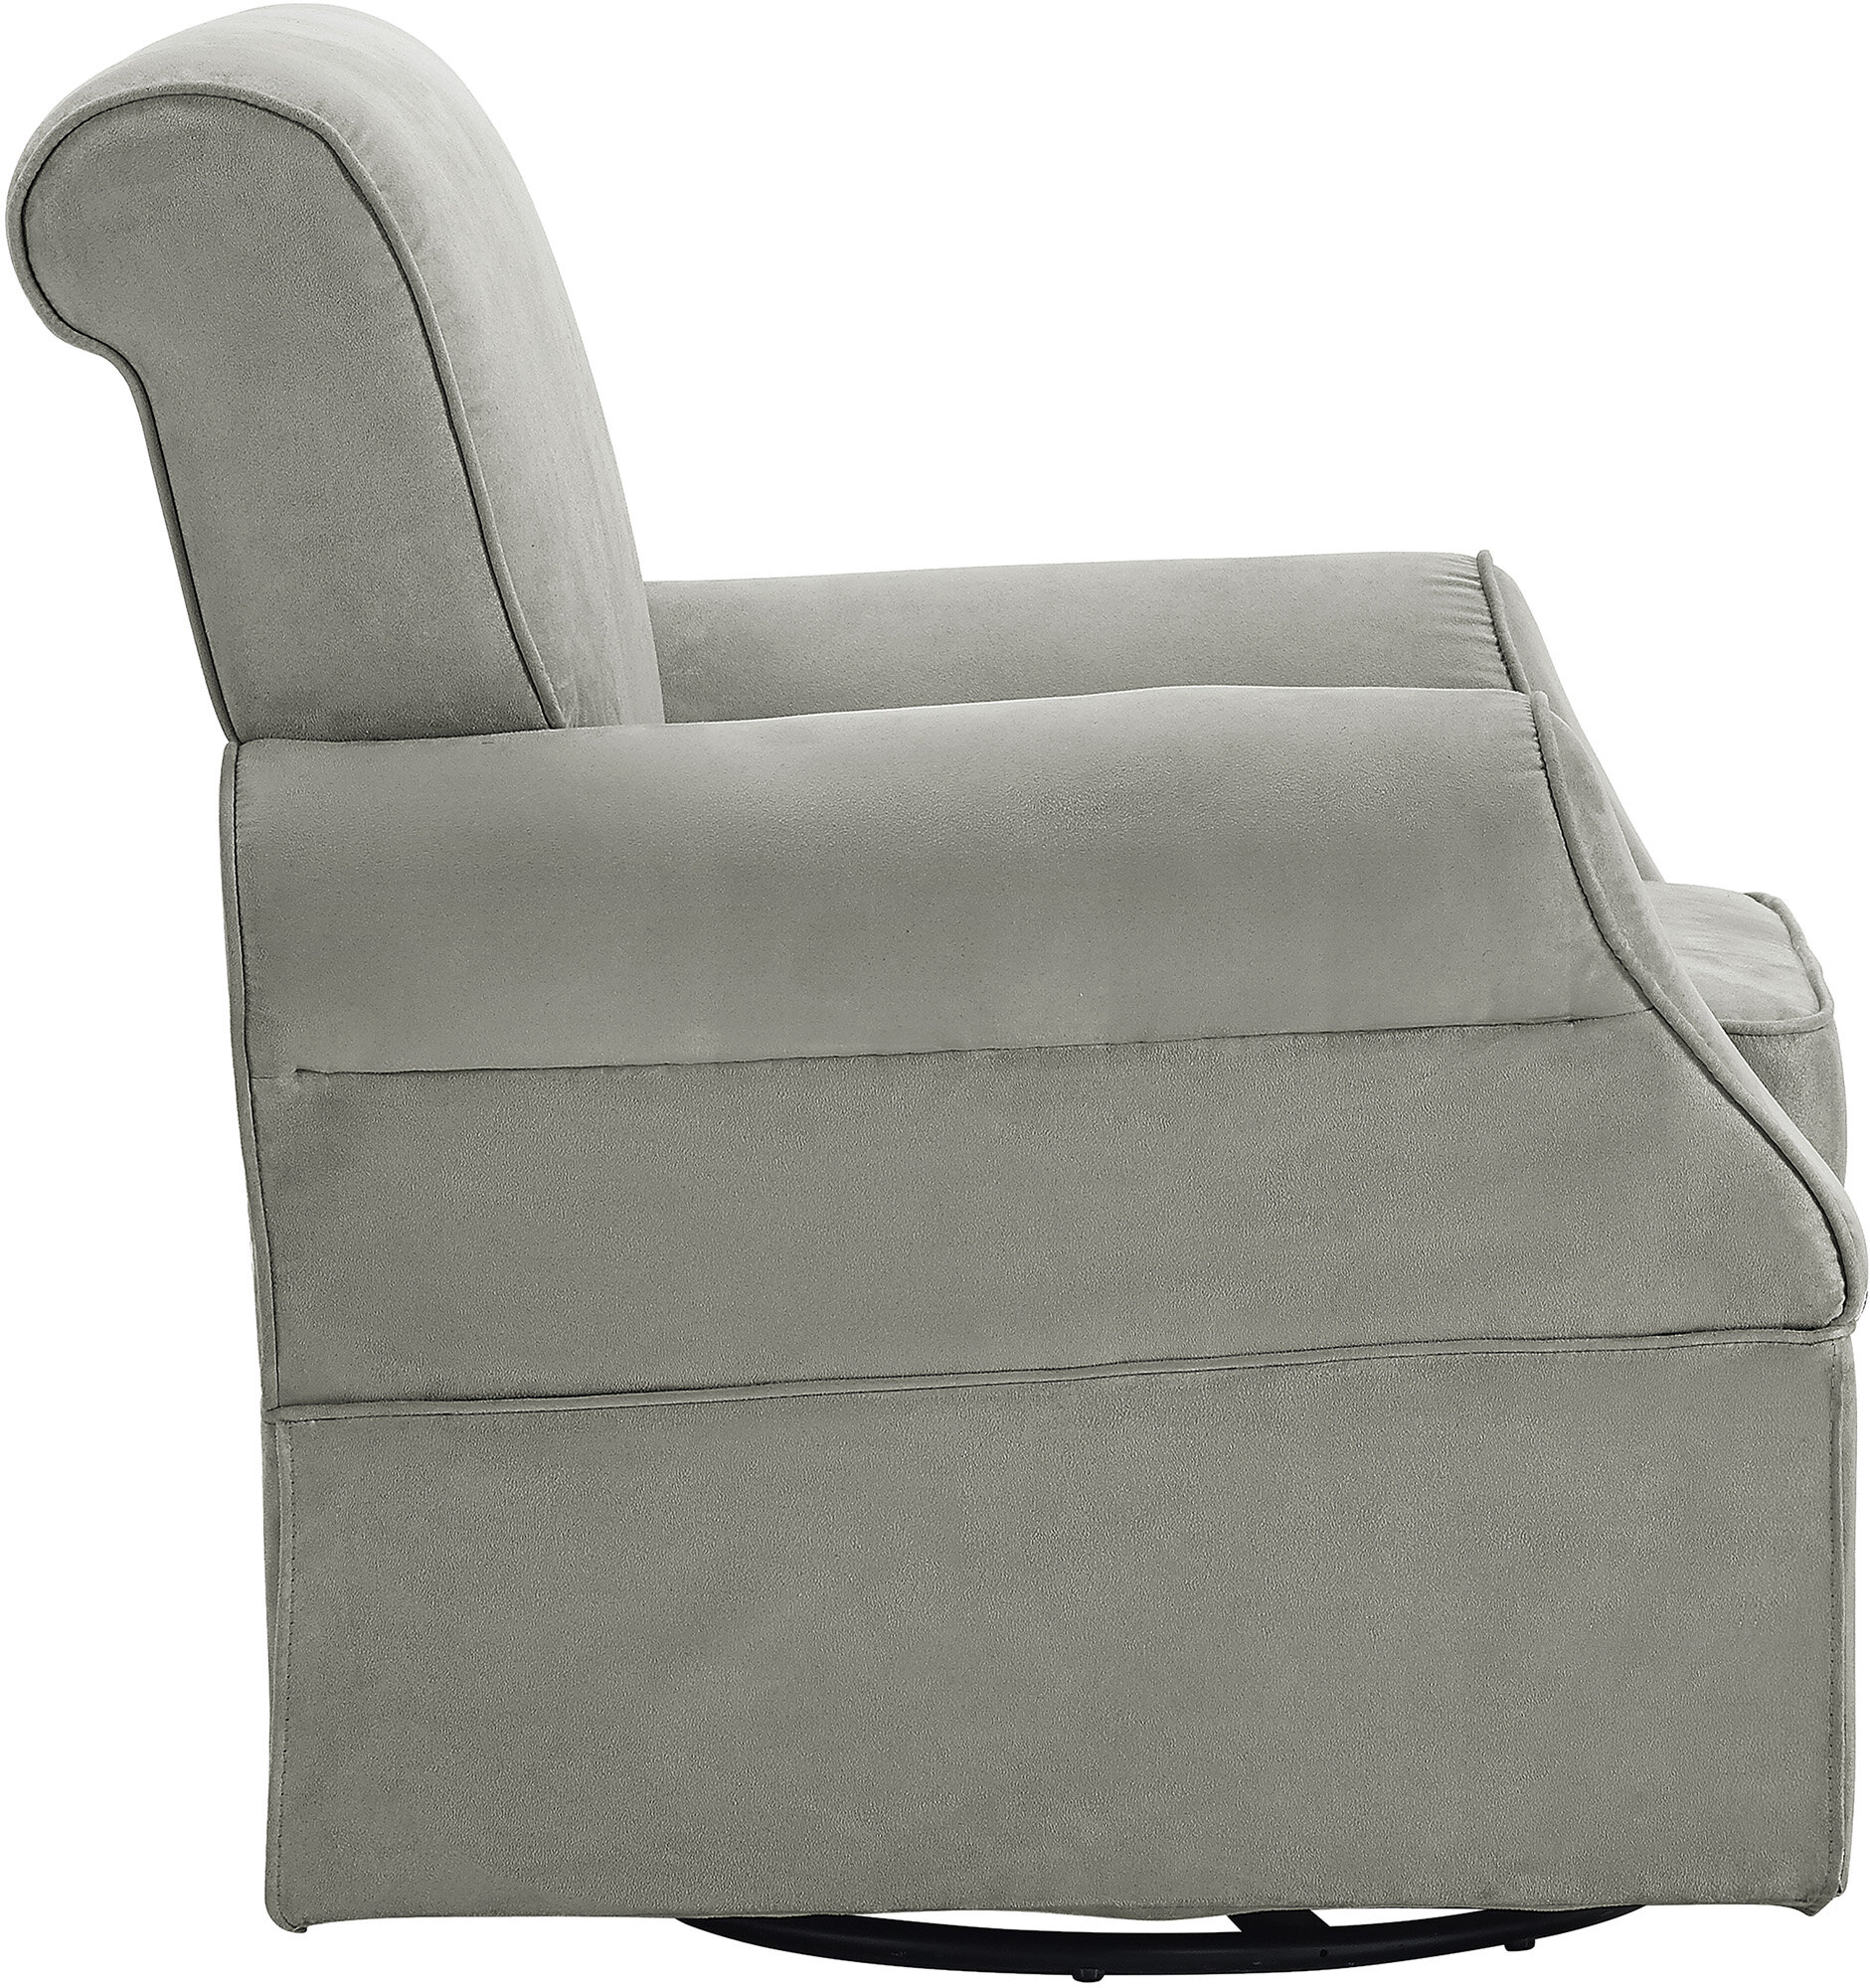 baby relax baby relax kelcie swivel glider chair and ottoman ebay. Black Bedroom Furniture Sets. Home Design Ideas